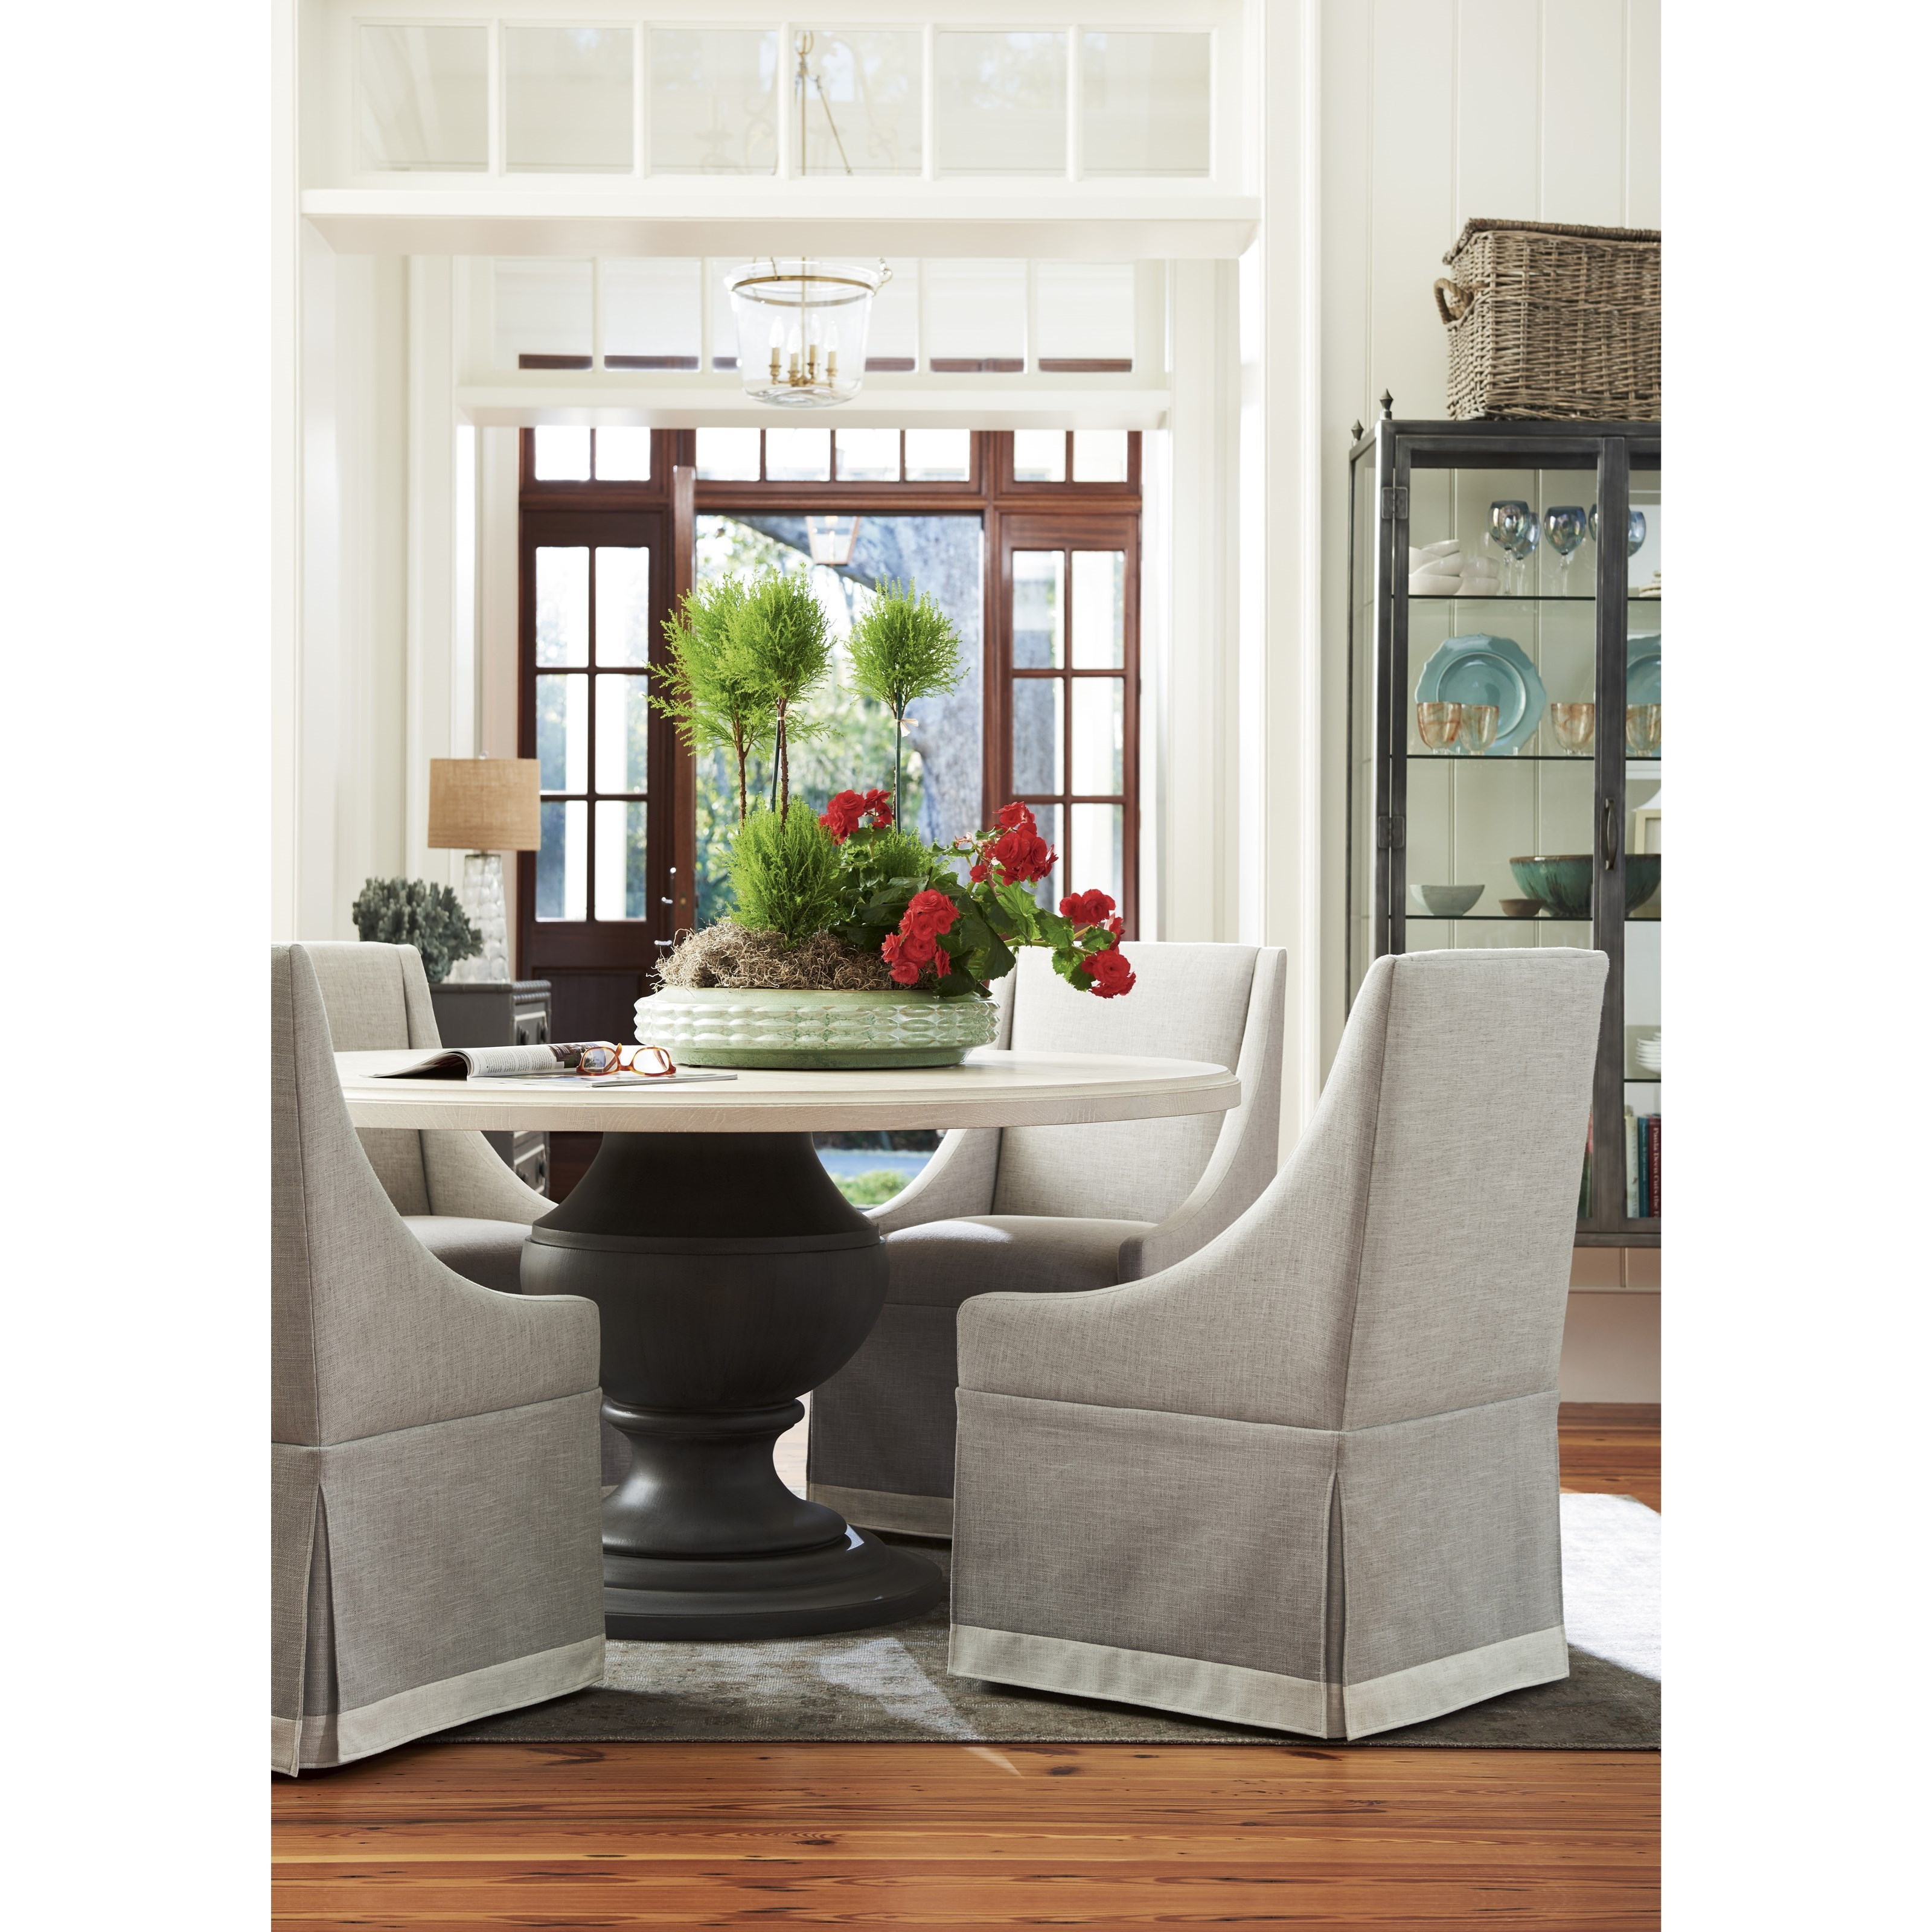 Paula Deen By Universal Bungalow 795637 Cottage Host Chair